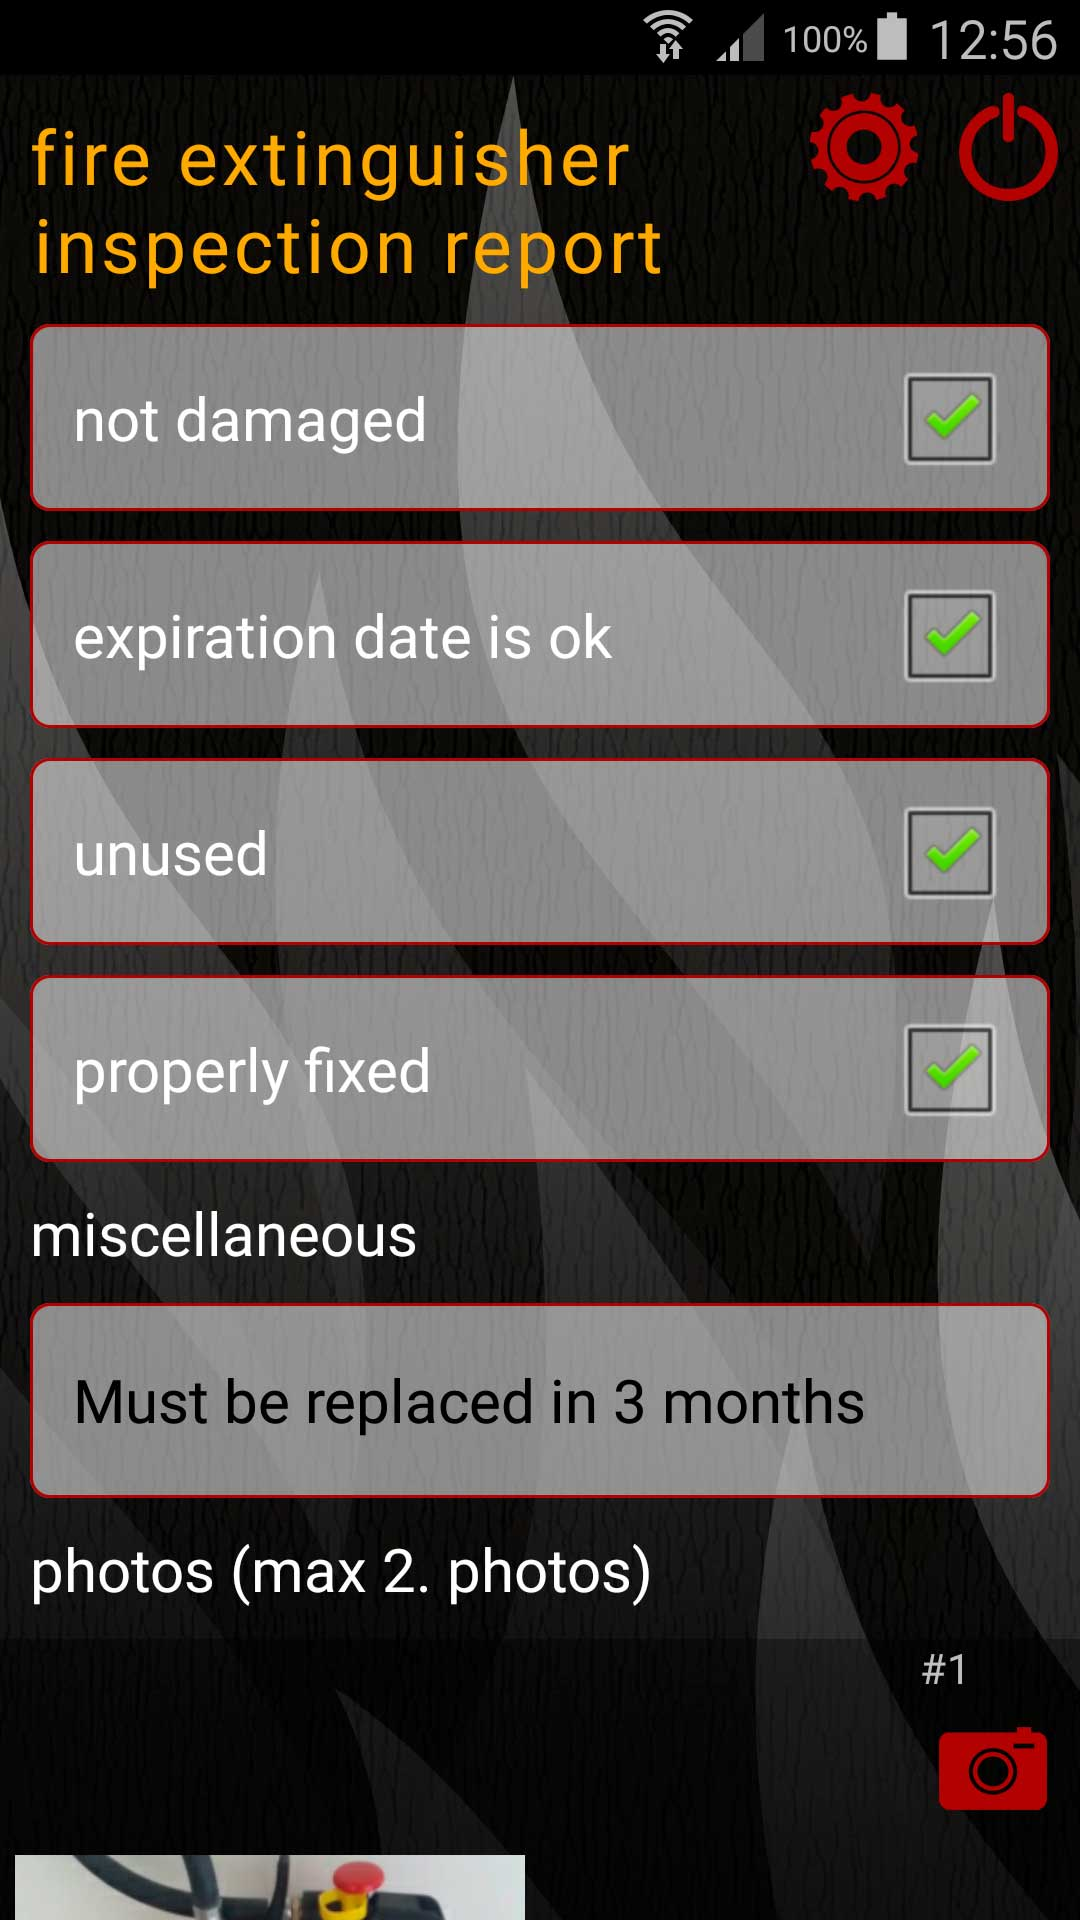 ginstr_app_fireExtinguisherInspectionReport_EN_3